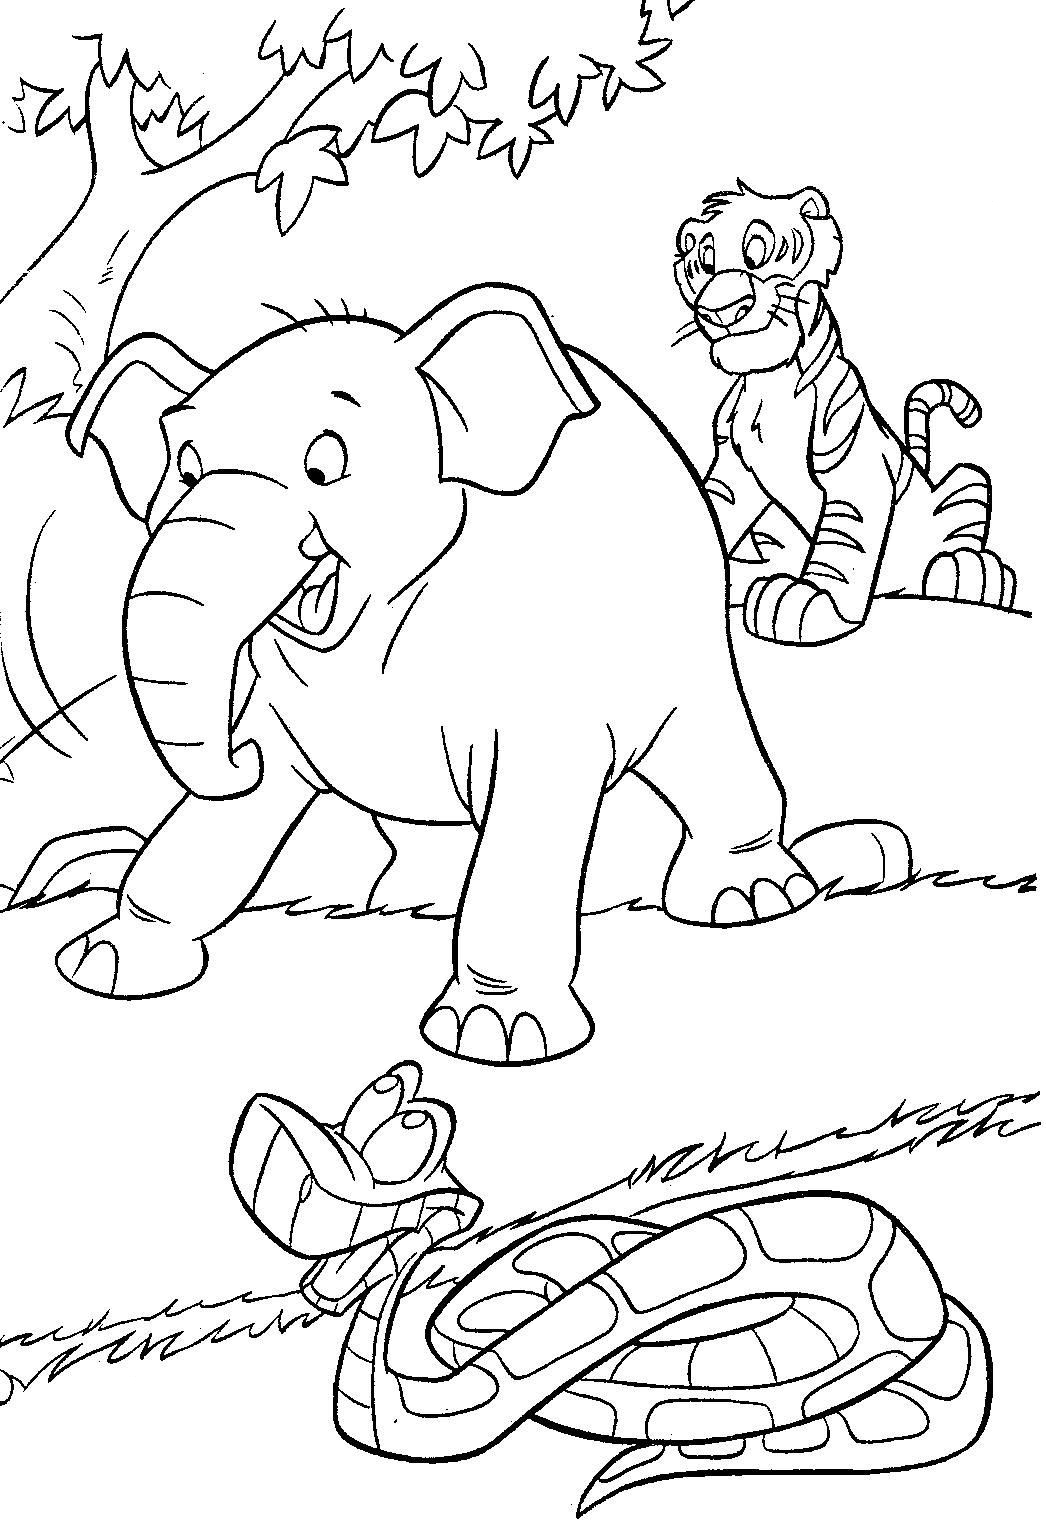 wwwfree coloring pagescom coloring page for boys fun chap pagescom coloring wwwfree